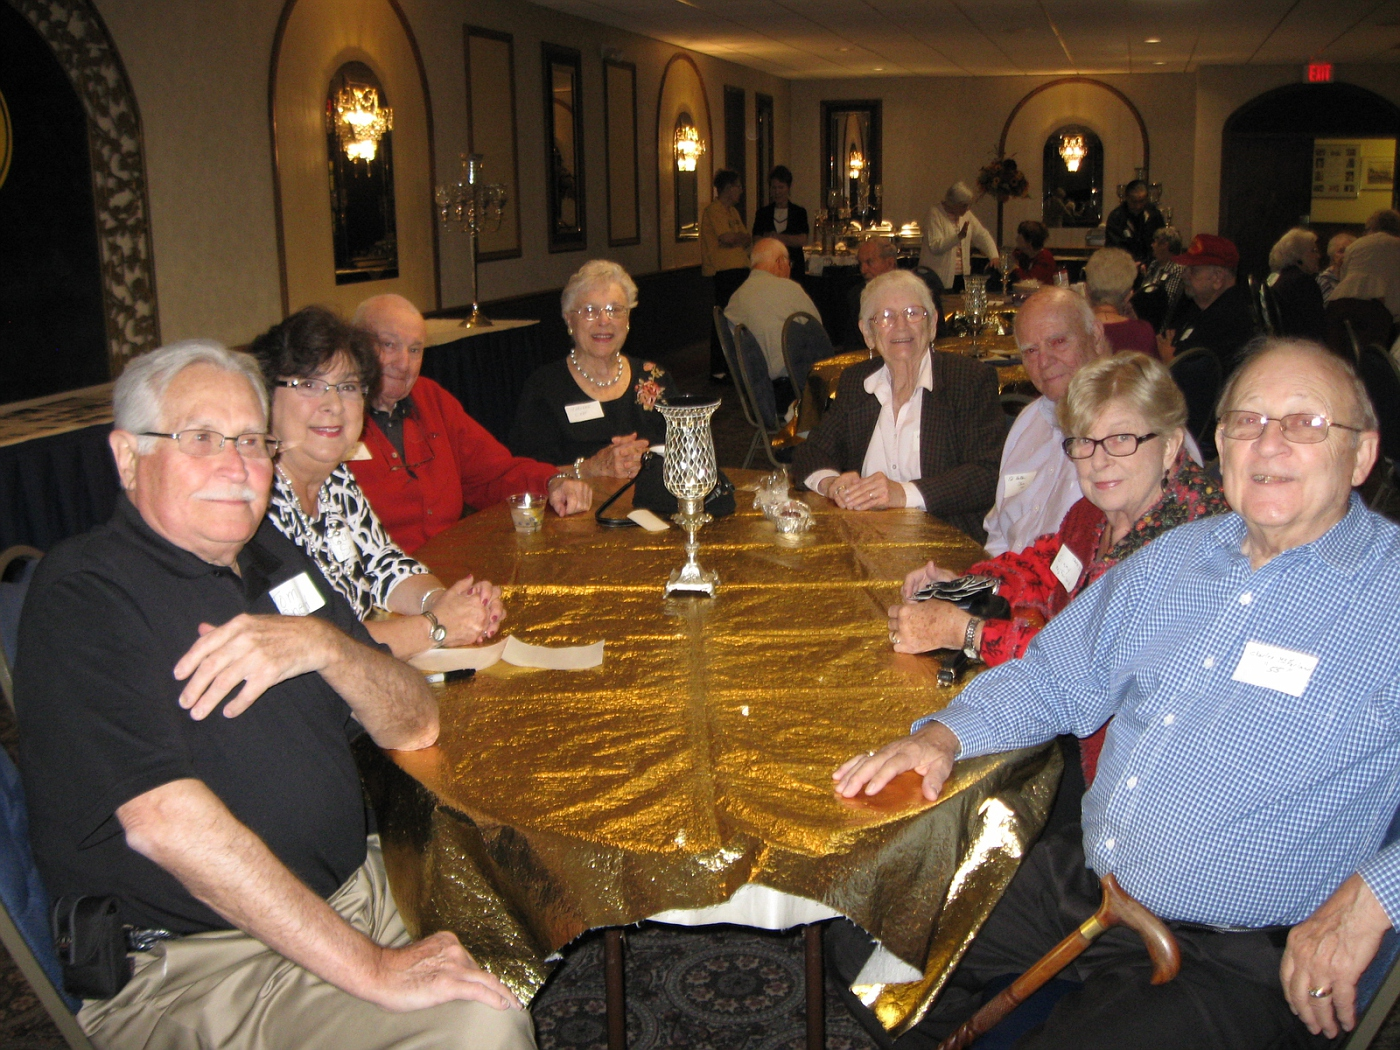 Tom Sneed and wife, Charlie and Marlene Cady, Helen and Ed Hahler, Blank and Charles McFarland